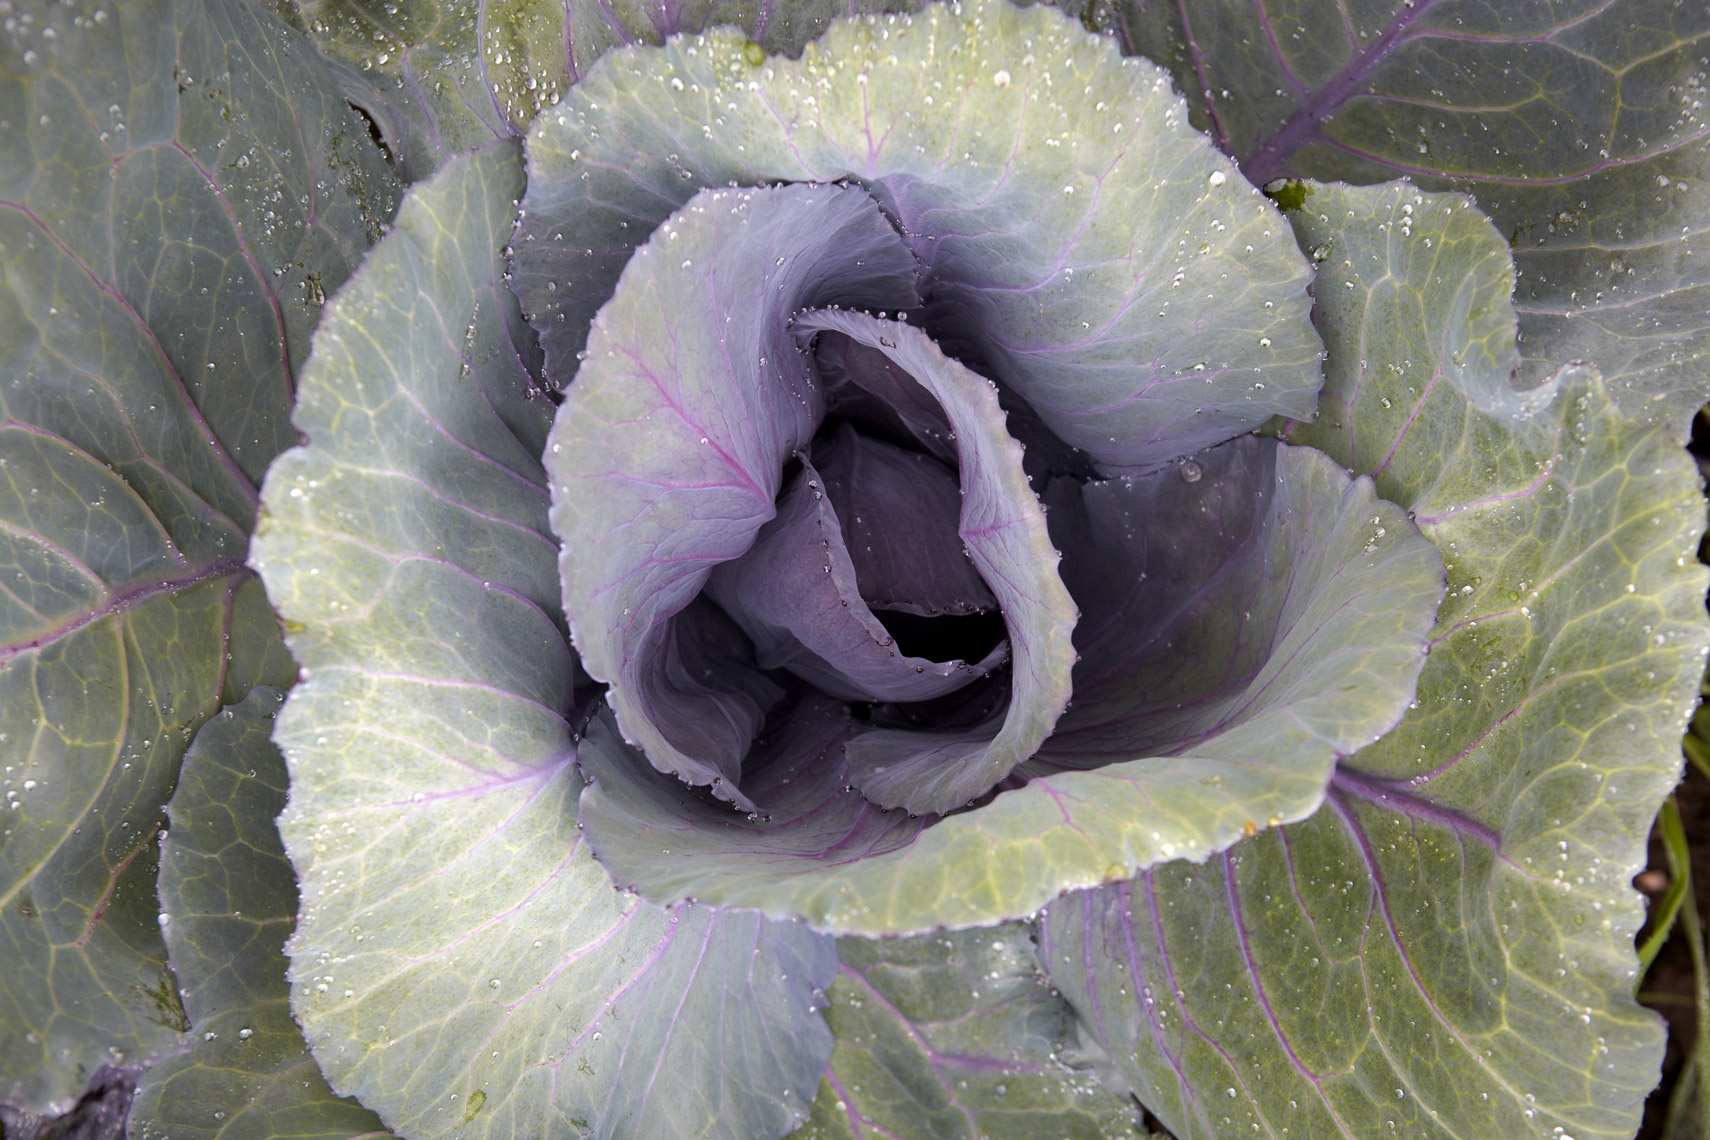 AlanCampbellPhotography, fresh ingredients cabbage